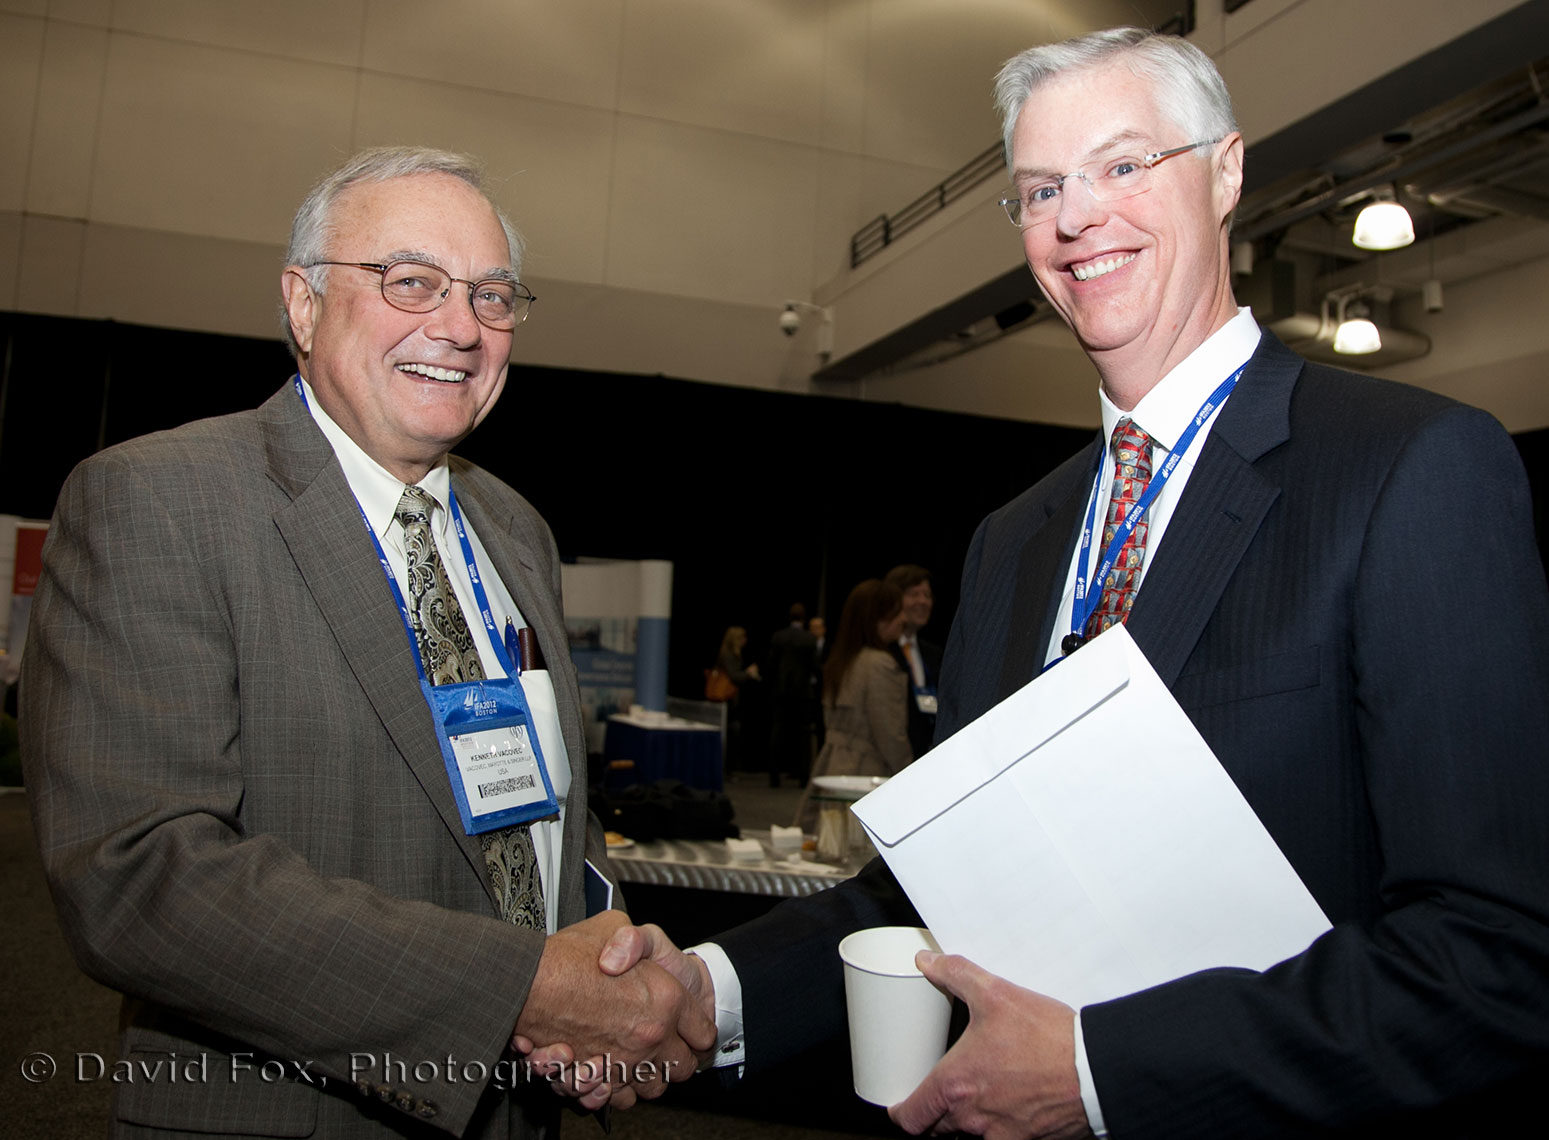 IFA Conference Attendees Shake Hands Networking